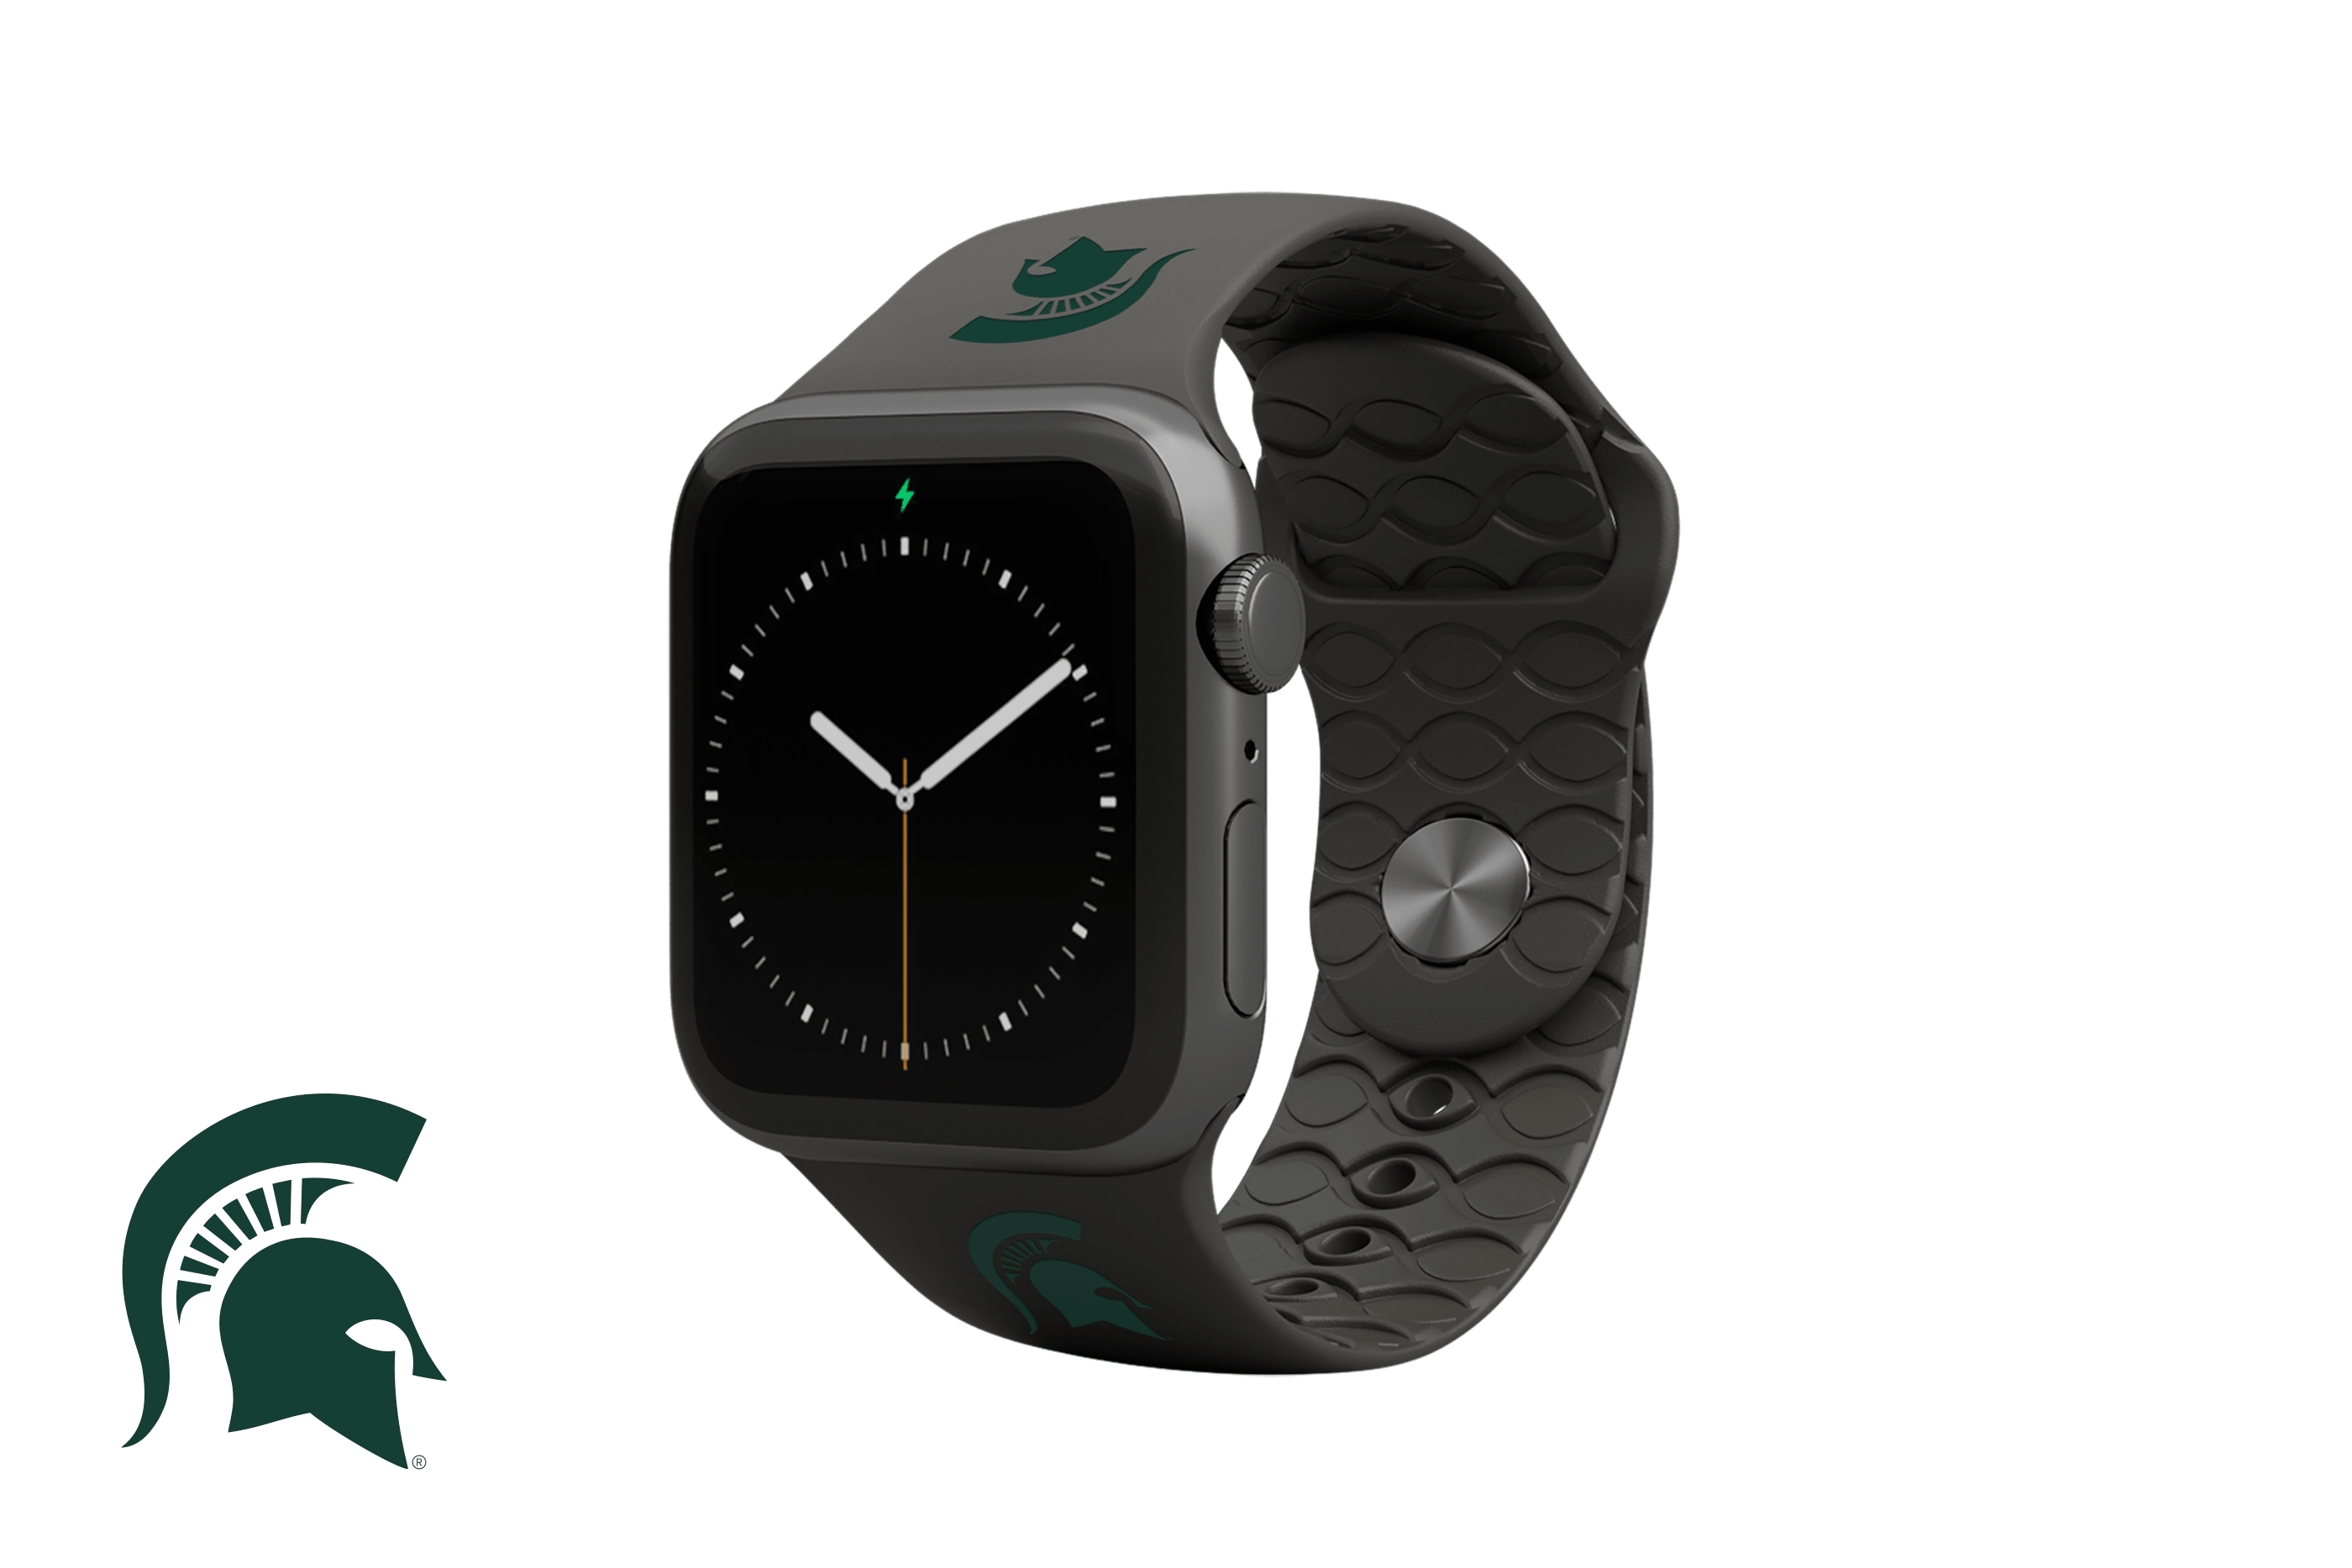 Apple Watch Band College Michigan State Black with gray hardware viewed front on